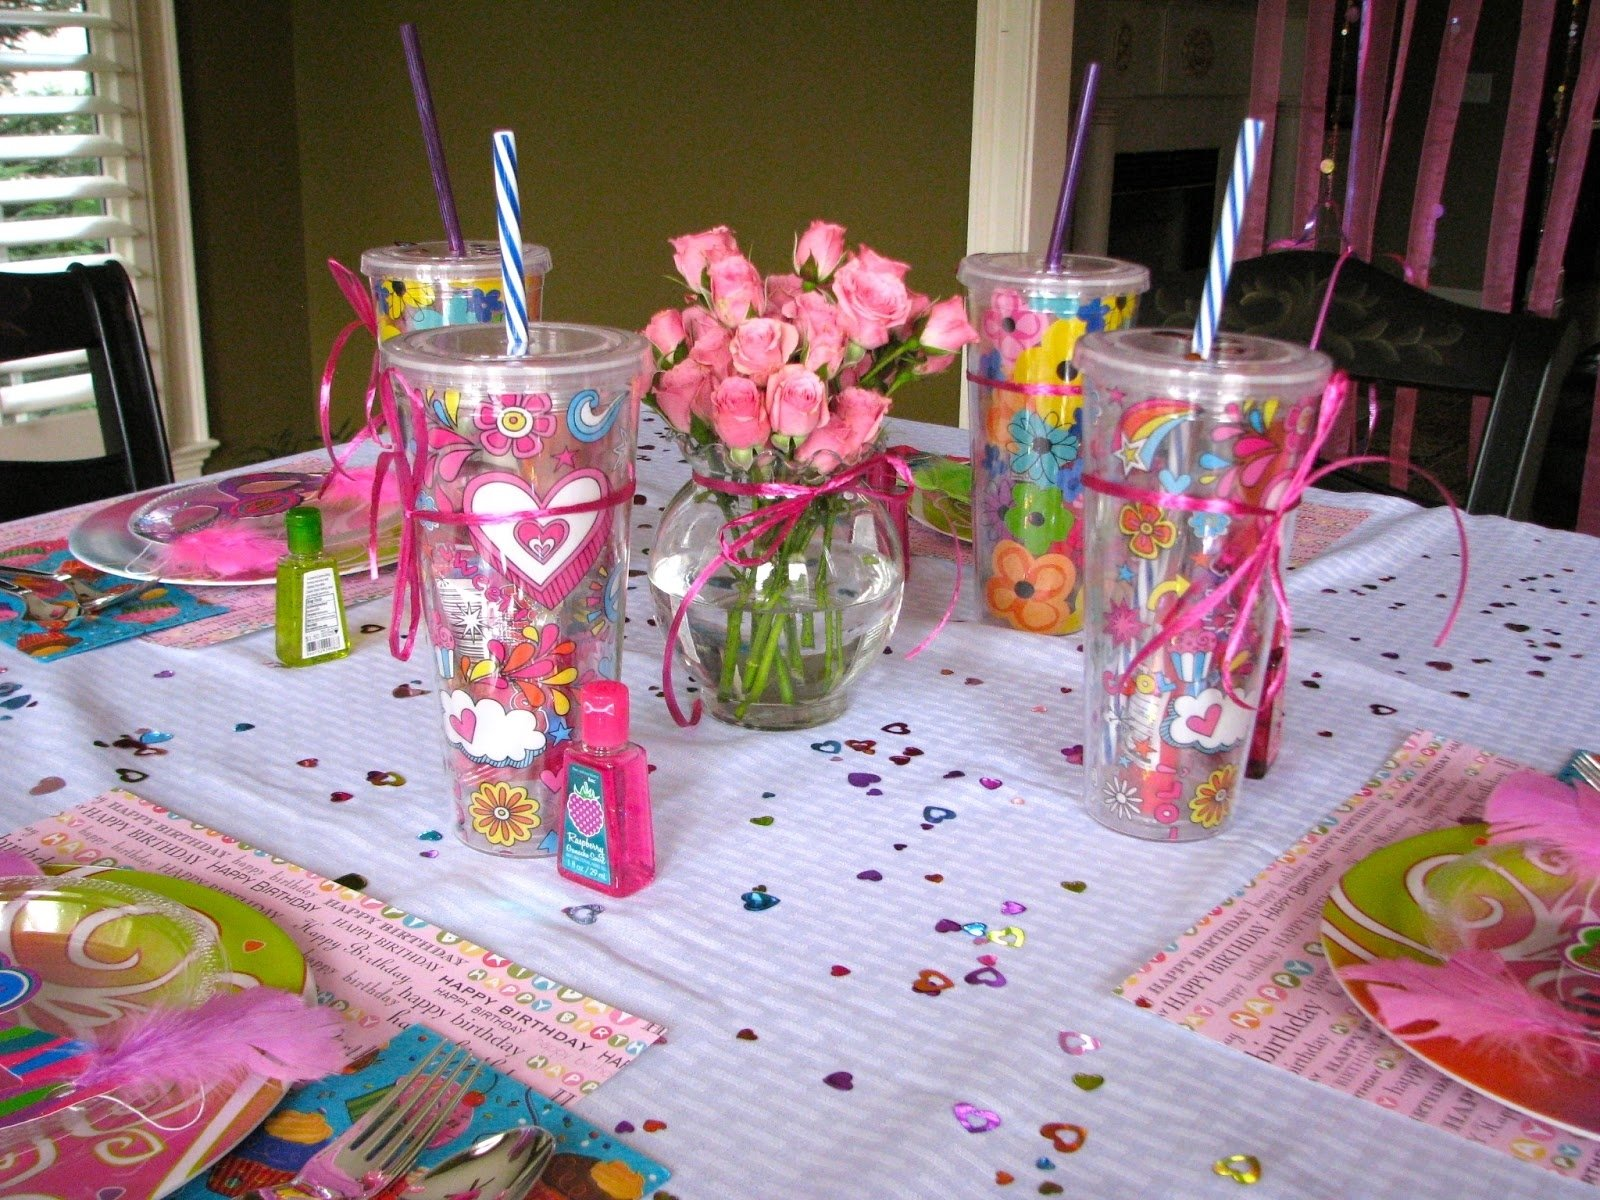 10 Awesome 2 Year Old Little Girl Birthday Party Ideas Homemadeville Your Place For Homemade Inspiration